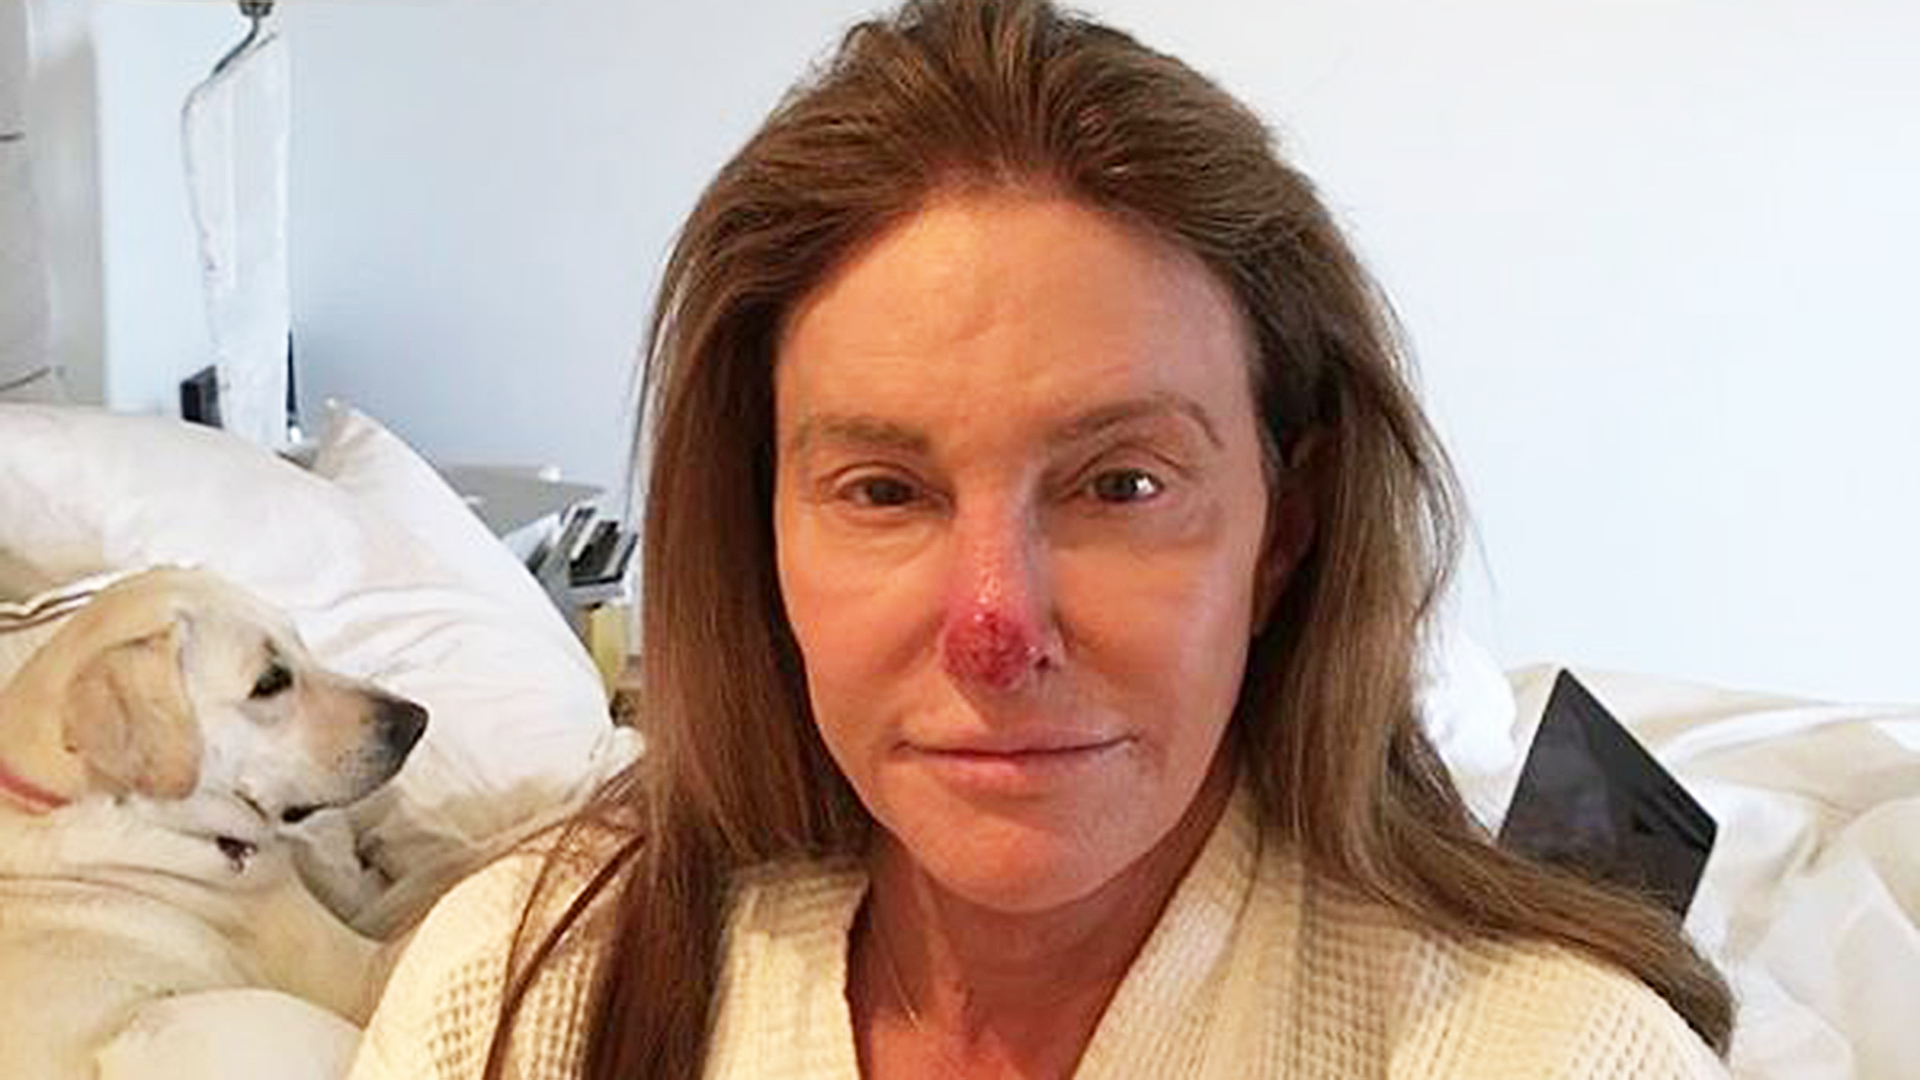 Caitlyn Jenner shares photo showing sun damage removed from nose 1920x1080